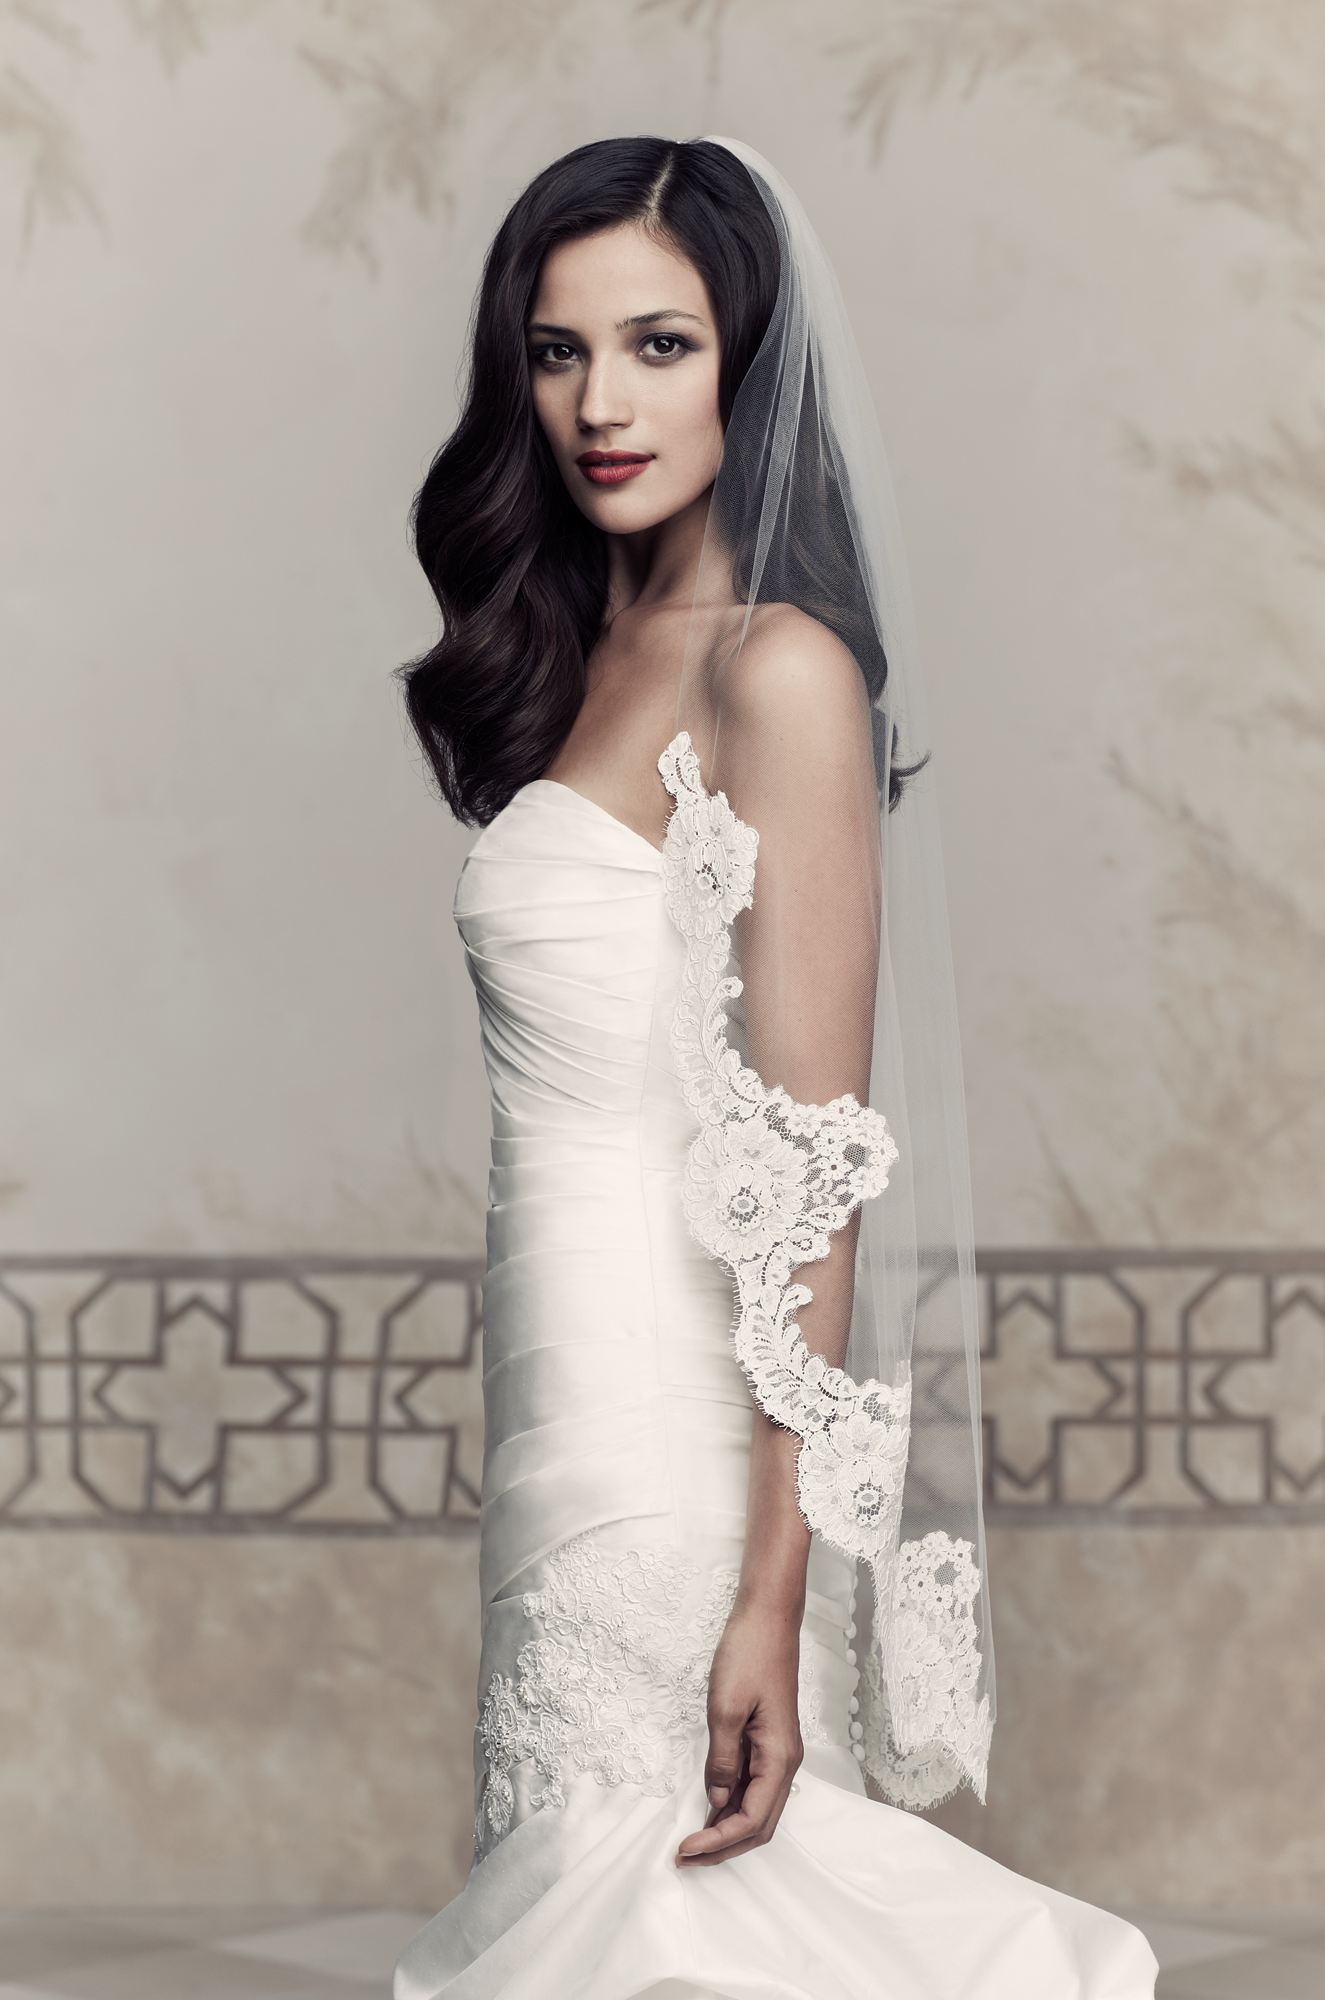 Style * 433 * » Bridal Veils Collection » by Paloma Blanca » Available in One Tier, Elbow, Fingertip or Chapel length Veil with French Alencon Lace edging starting at shoulder ~ Shown Fingertip Veil as Style *V433F*.